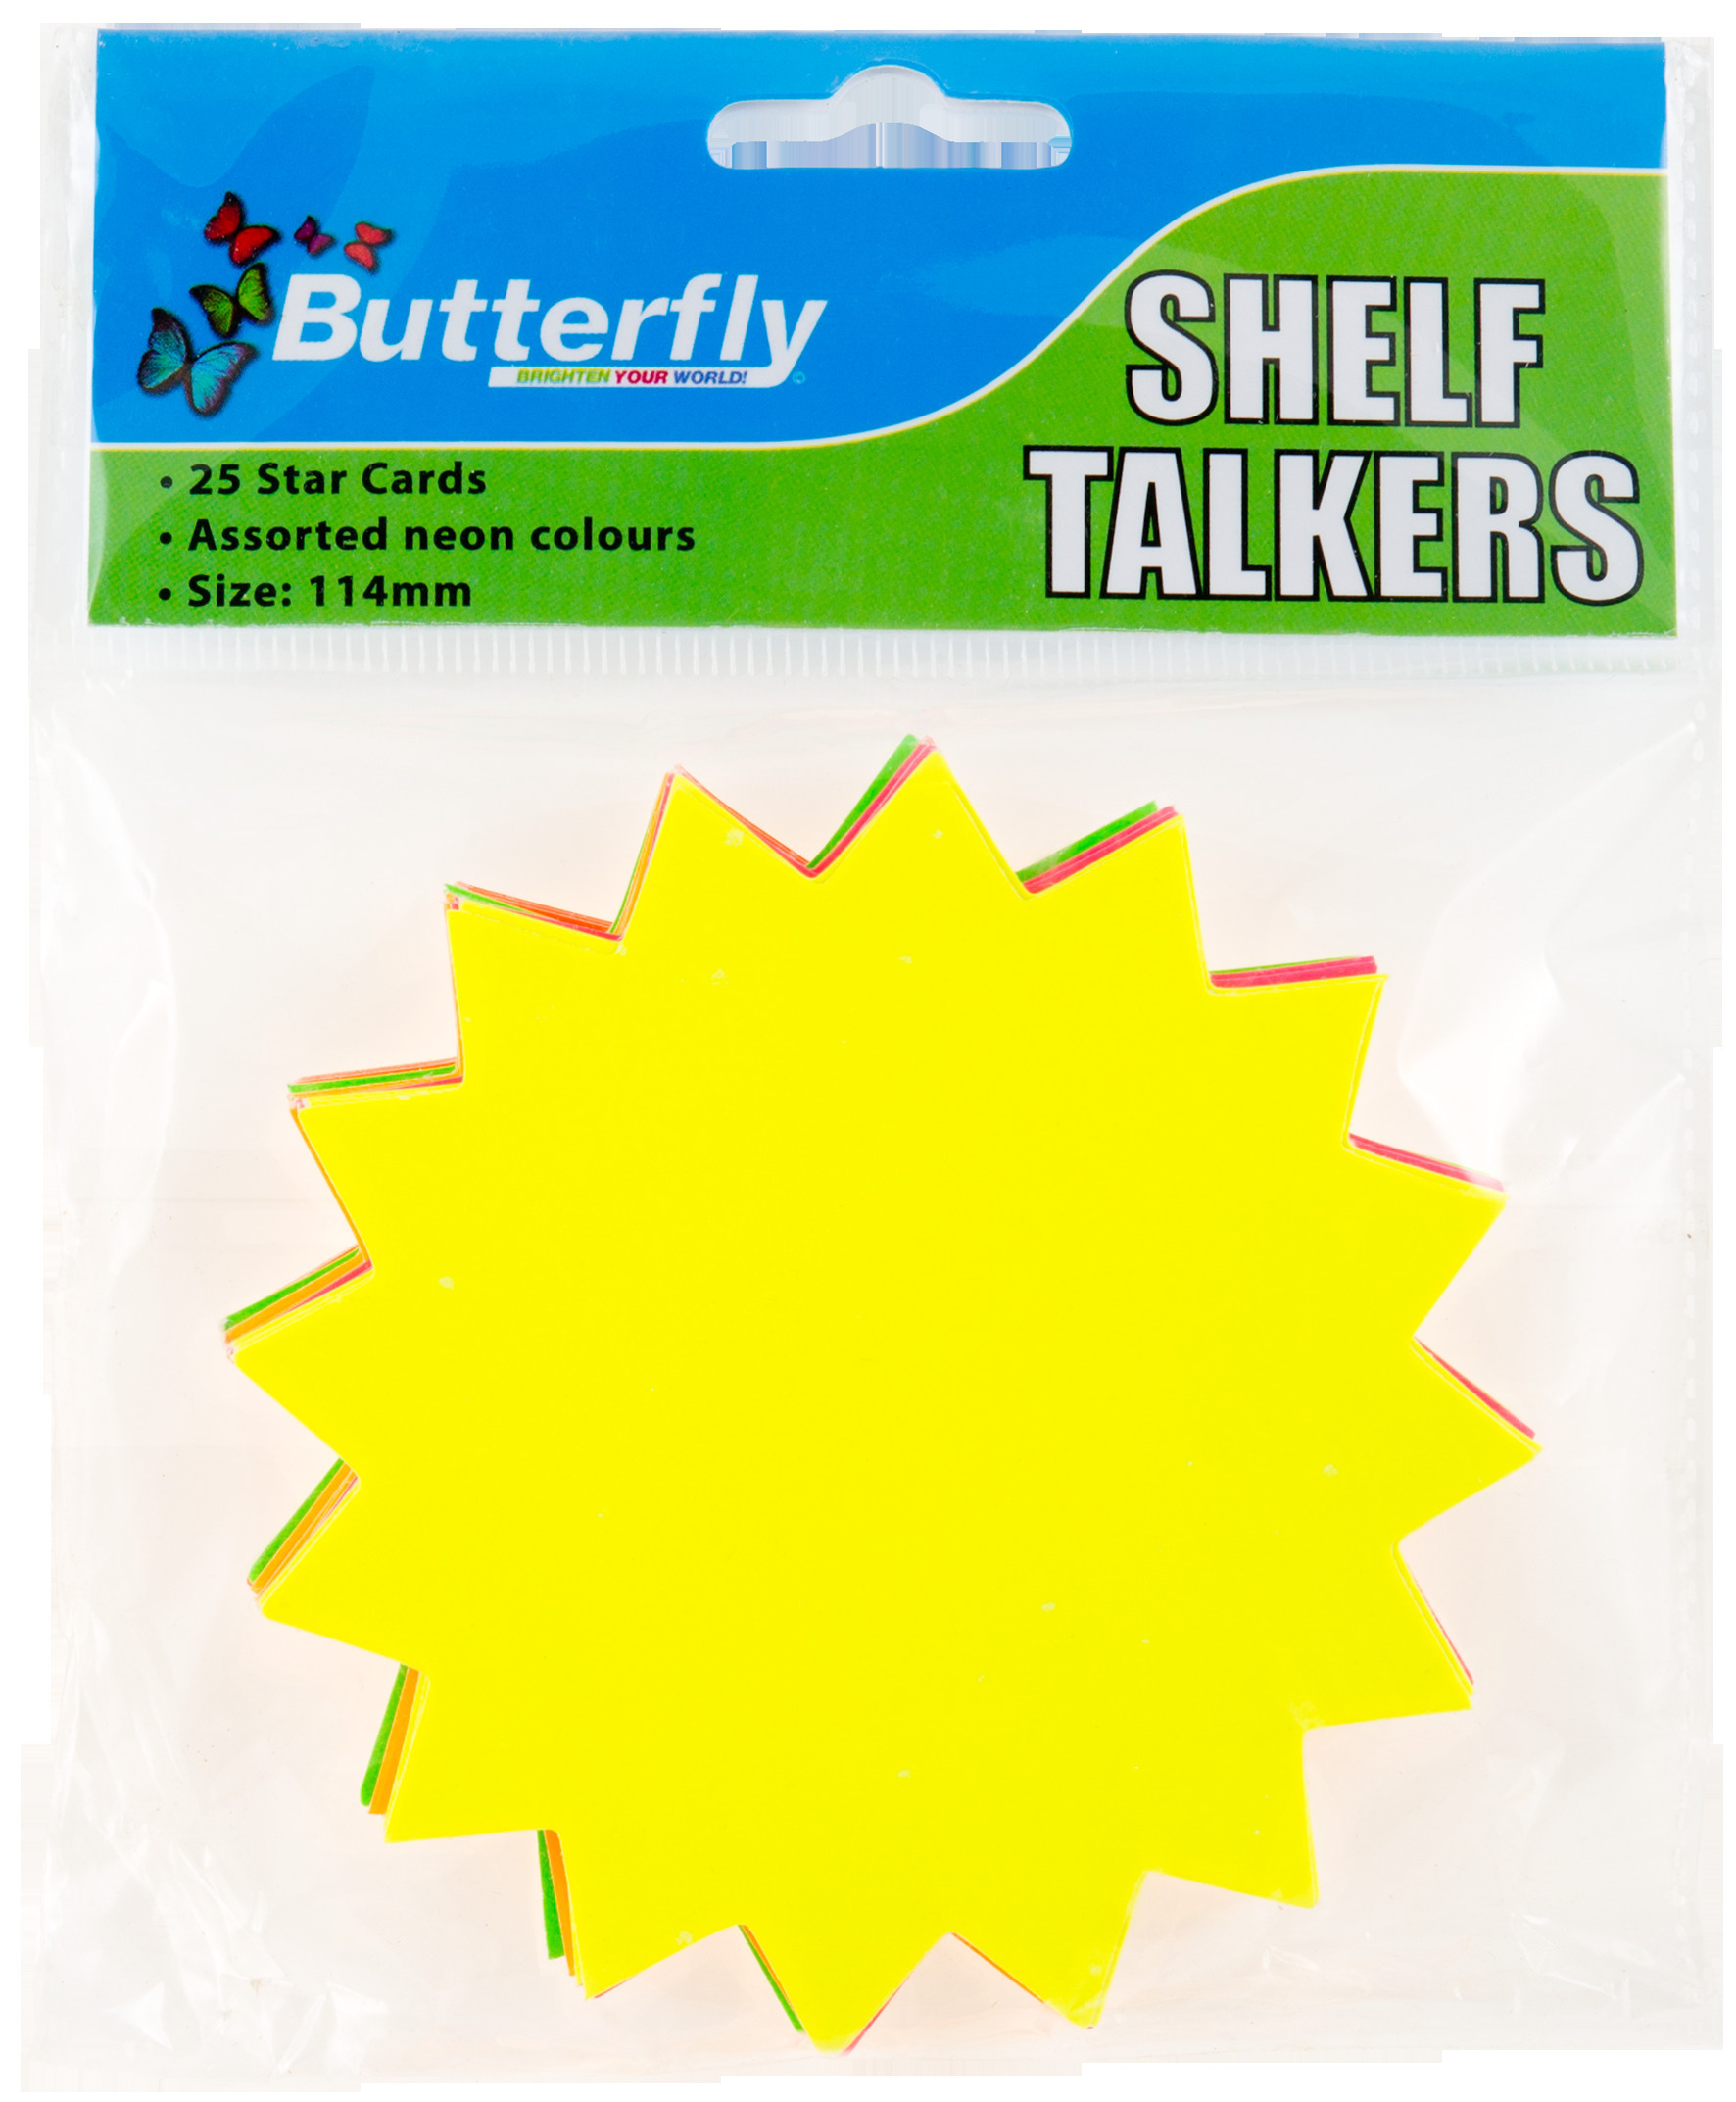 Shelf Talkers - Card Stars 25 (114mm)